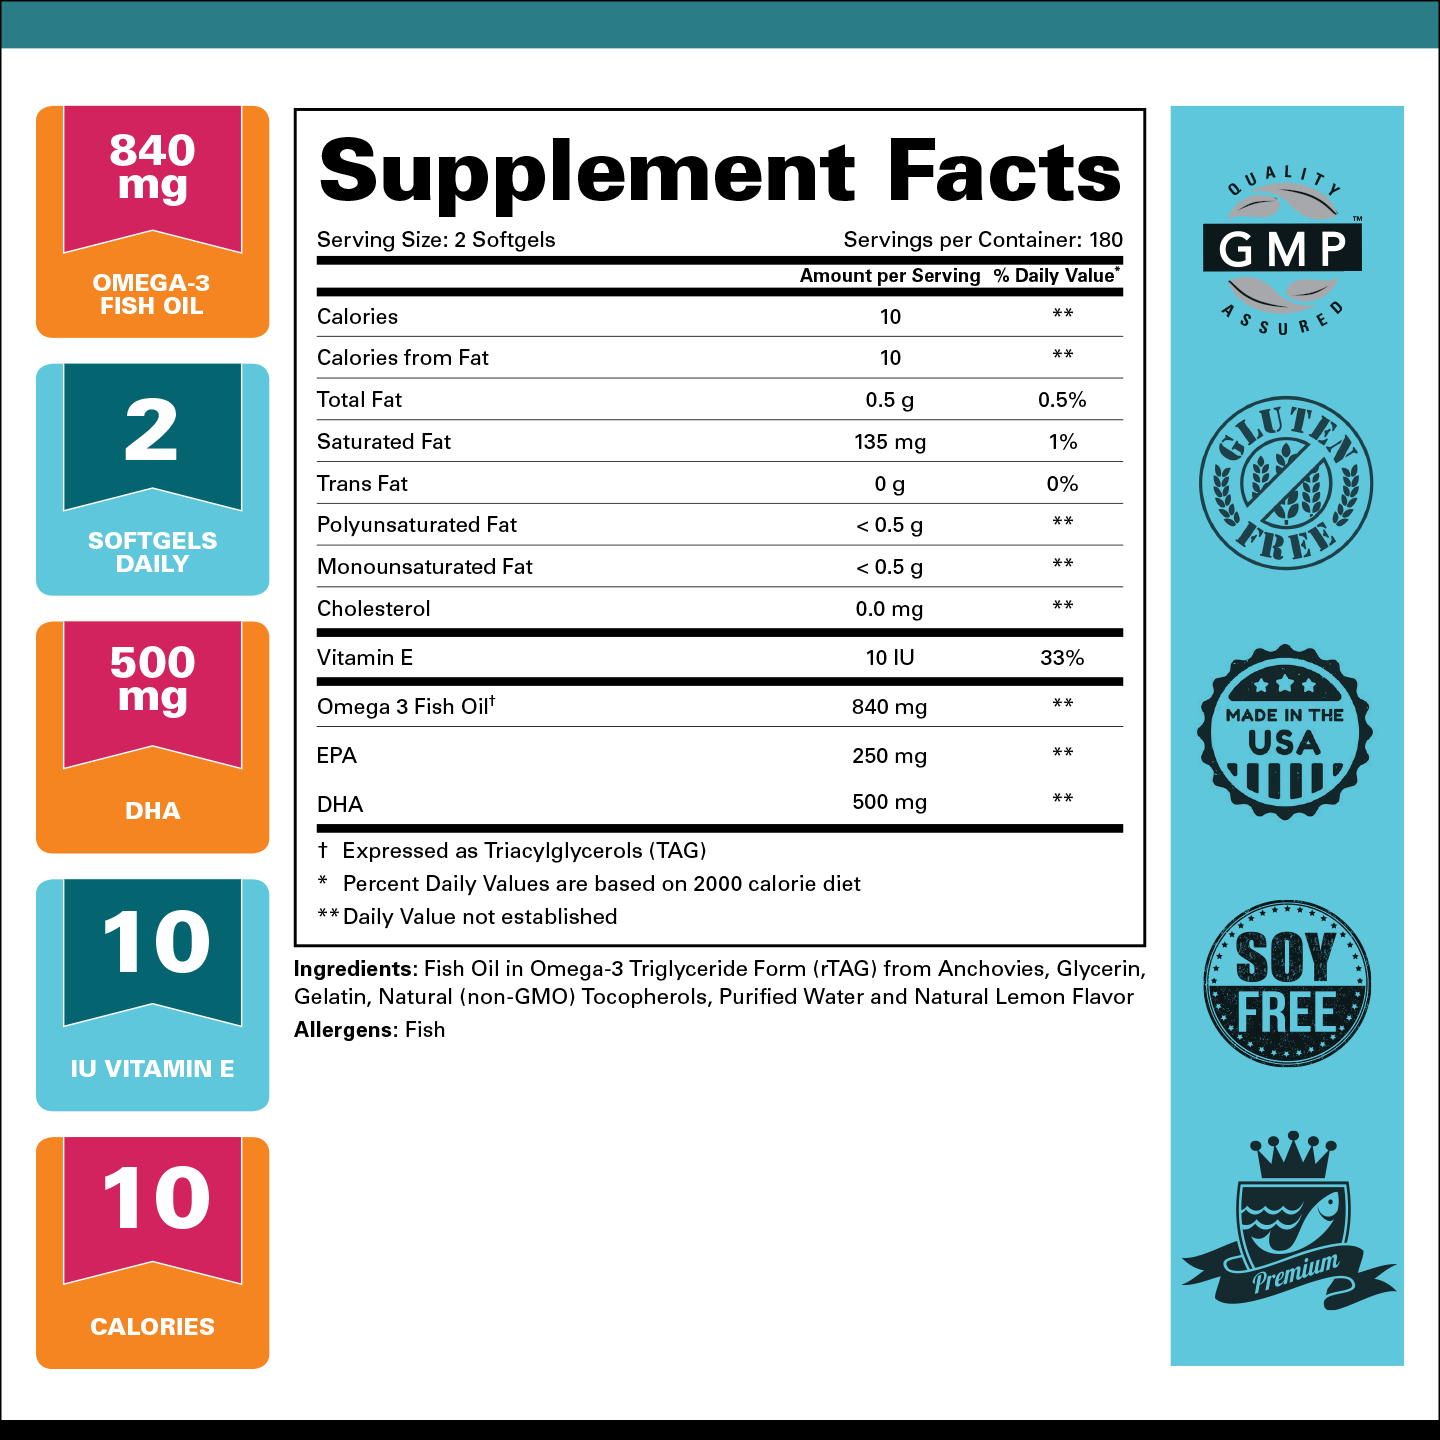 Prenatal DHA Supplement Facts